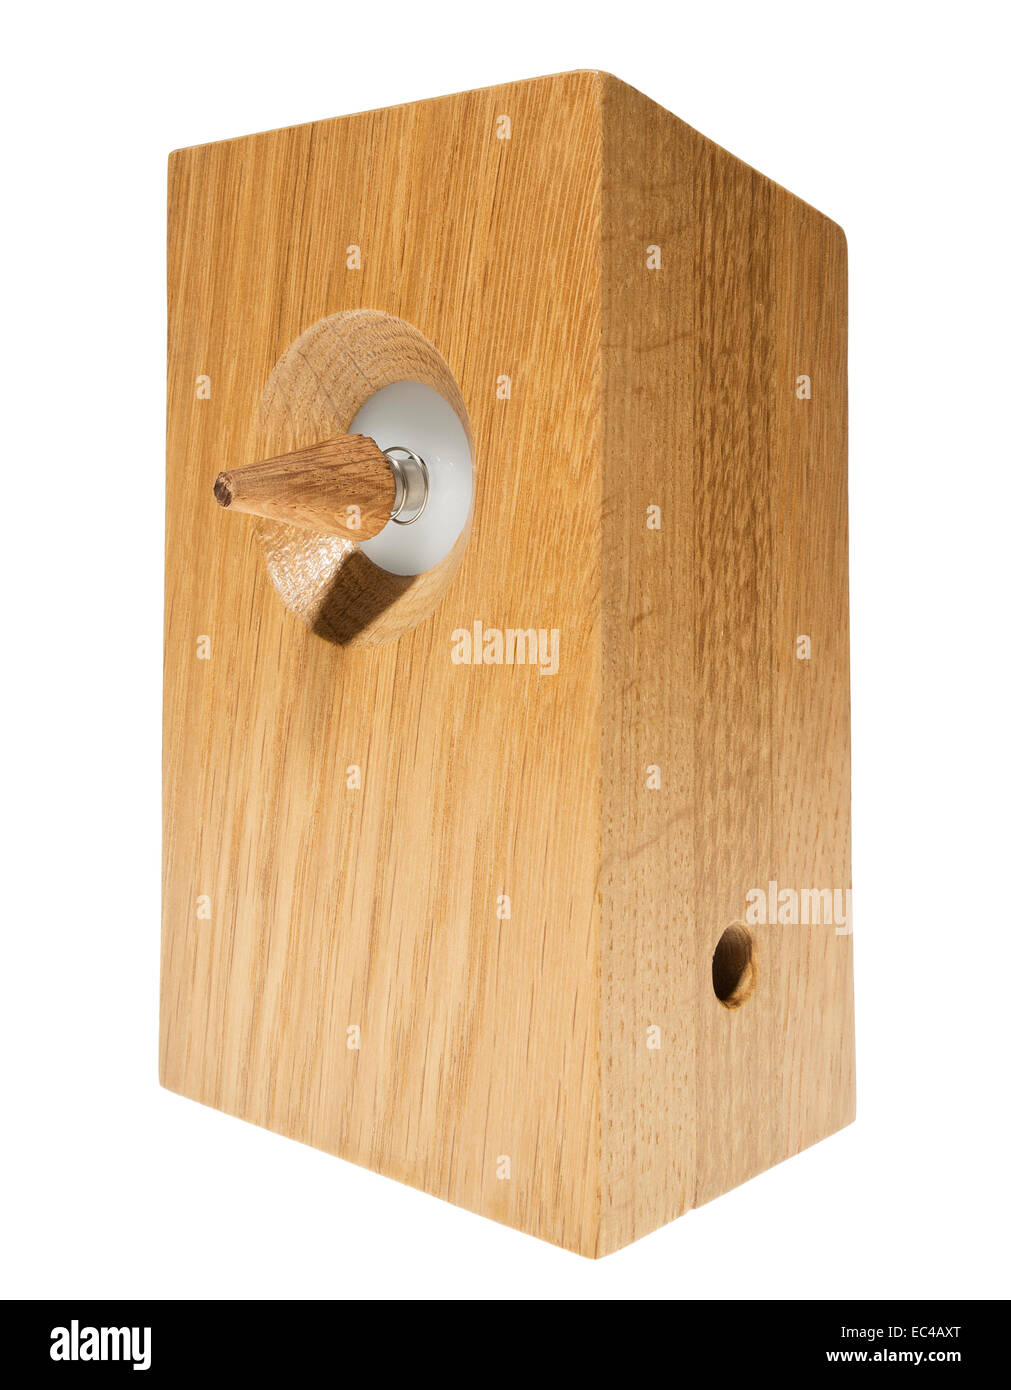 Wooden Woodpecker Alarm Clock by Alarming Industries. - Stock Image